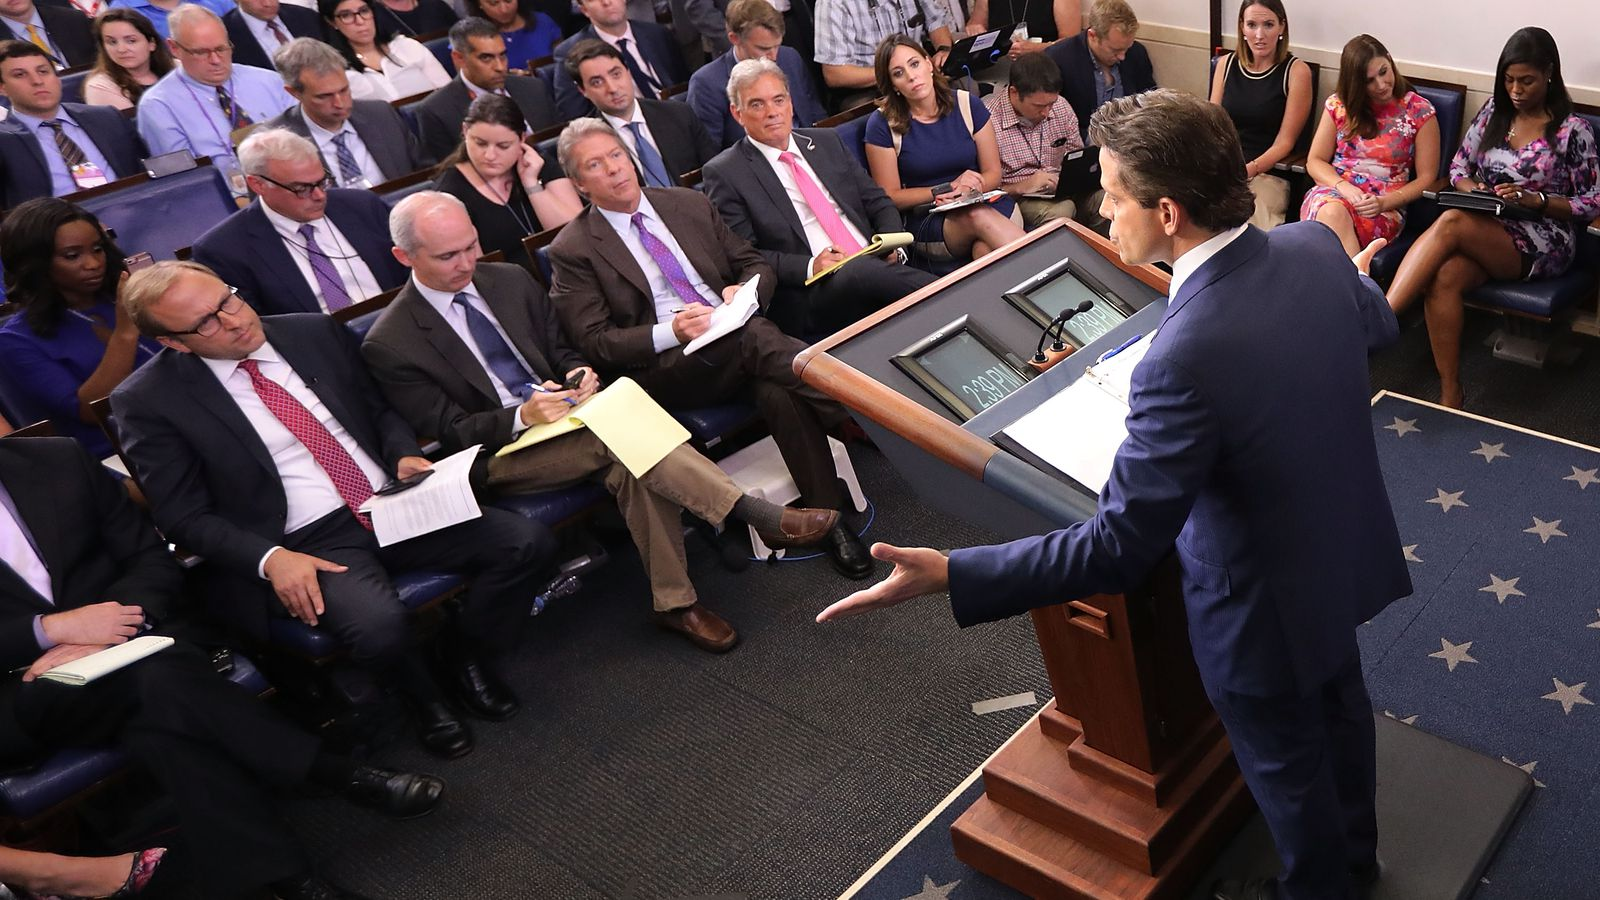 White House communications director Anthony Scaramucci says he'll delete tweets the internet already recorded